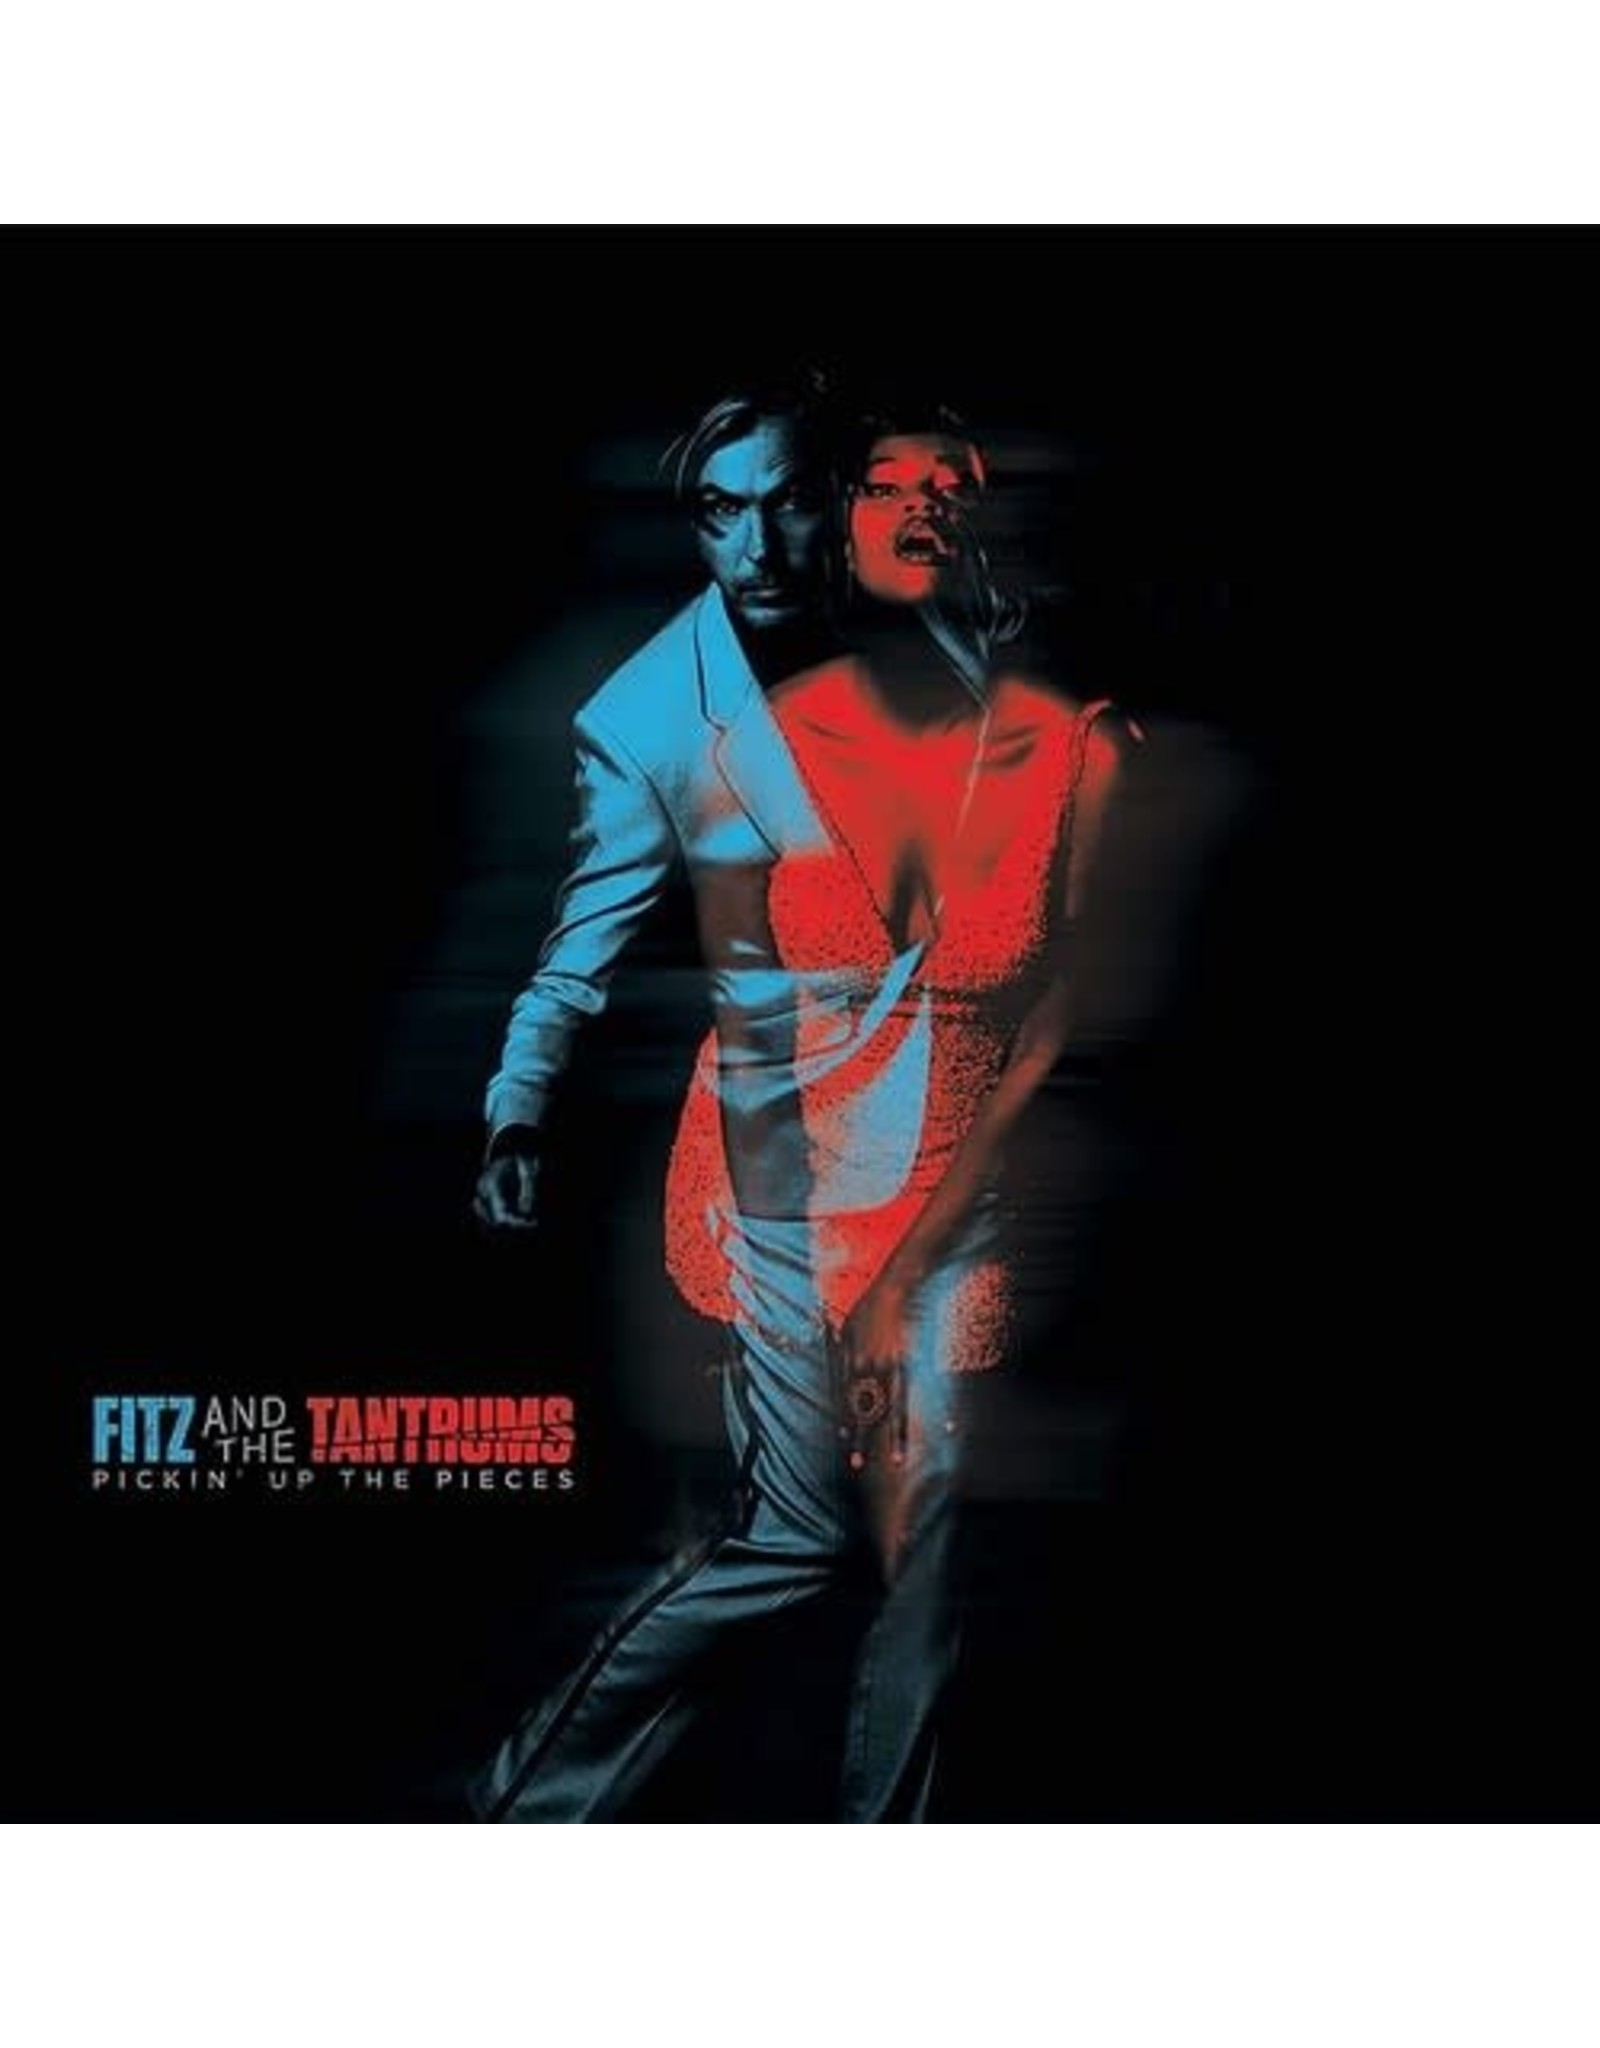 New Vinyl Fitz & The Tantrums - Pickin' Up The Pieces (Colored) LP